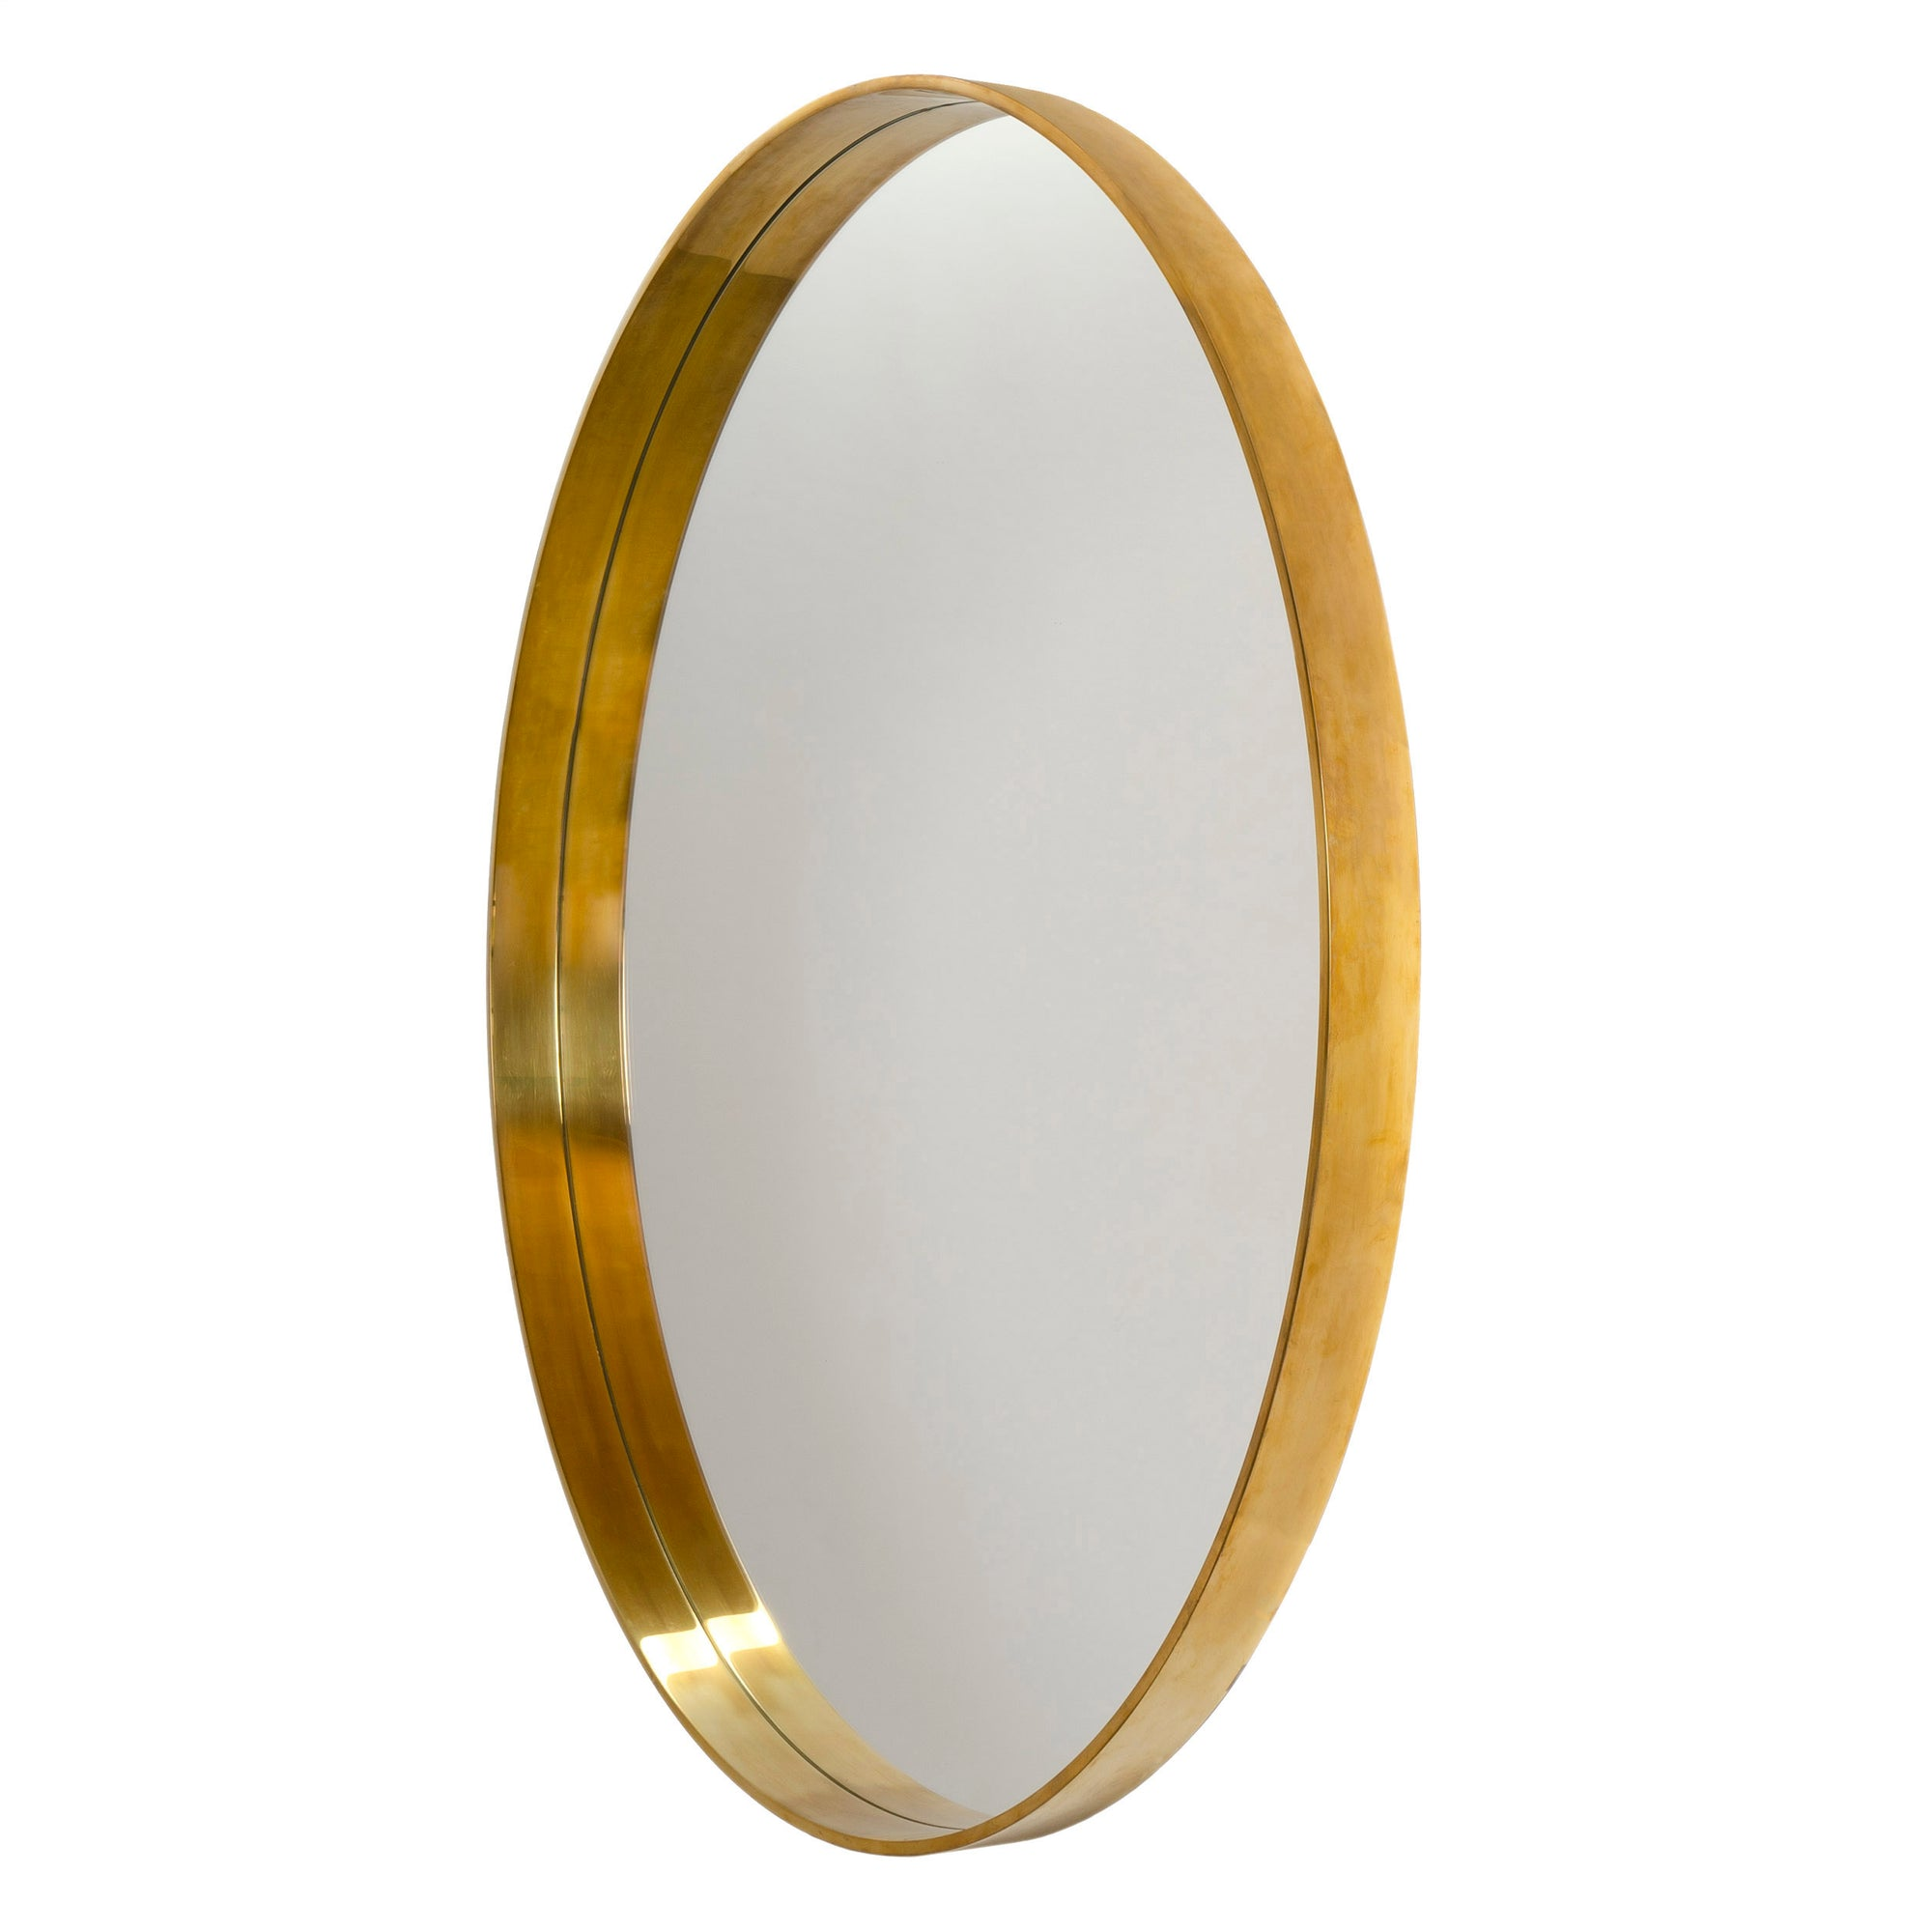 "WYETH Original 55"" Minimalist Round Mirror in Bronze - Mirrors - WYETH WYETH"